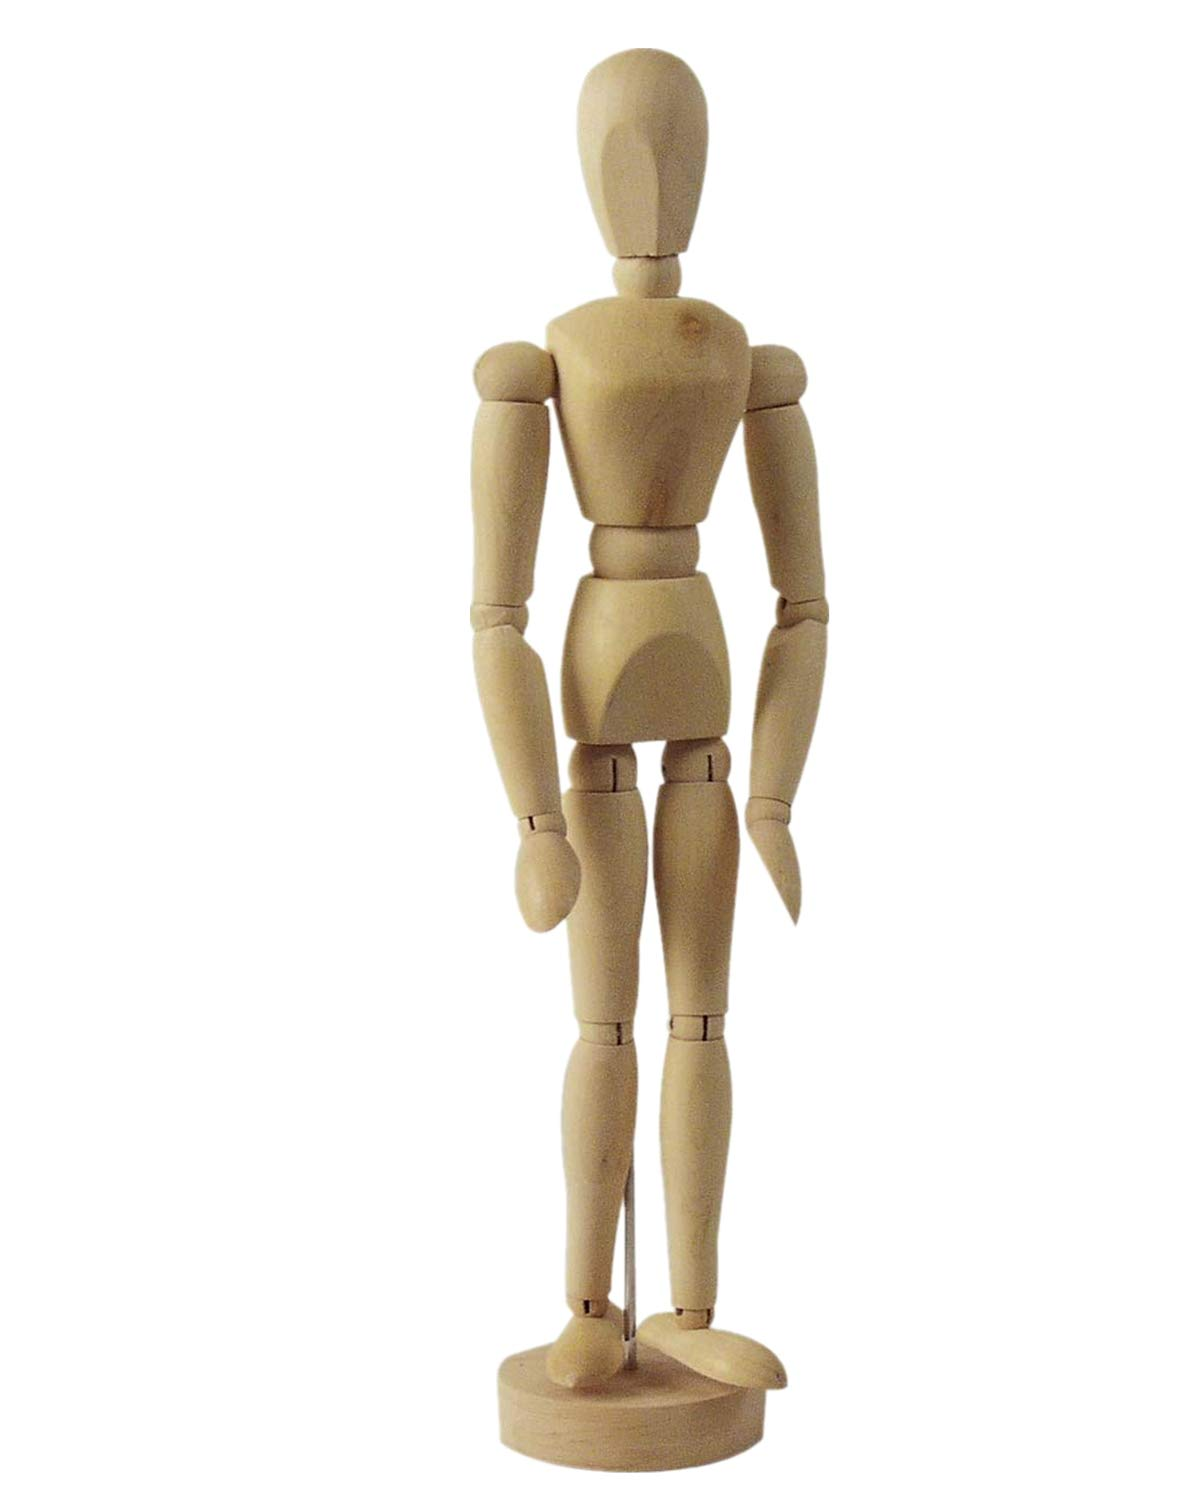 Drawing Manikin Wooden Mannequin Wood Artist Figure Doll Model with Flexible Posable Joints for Sketching Charcoal Home Office Desk Decoration Children Toys Gift 12''Male HOMLICO